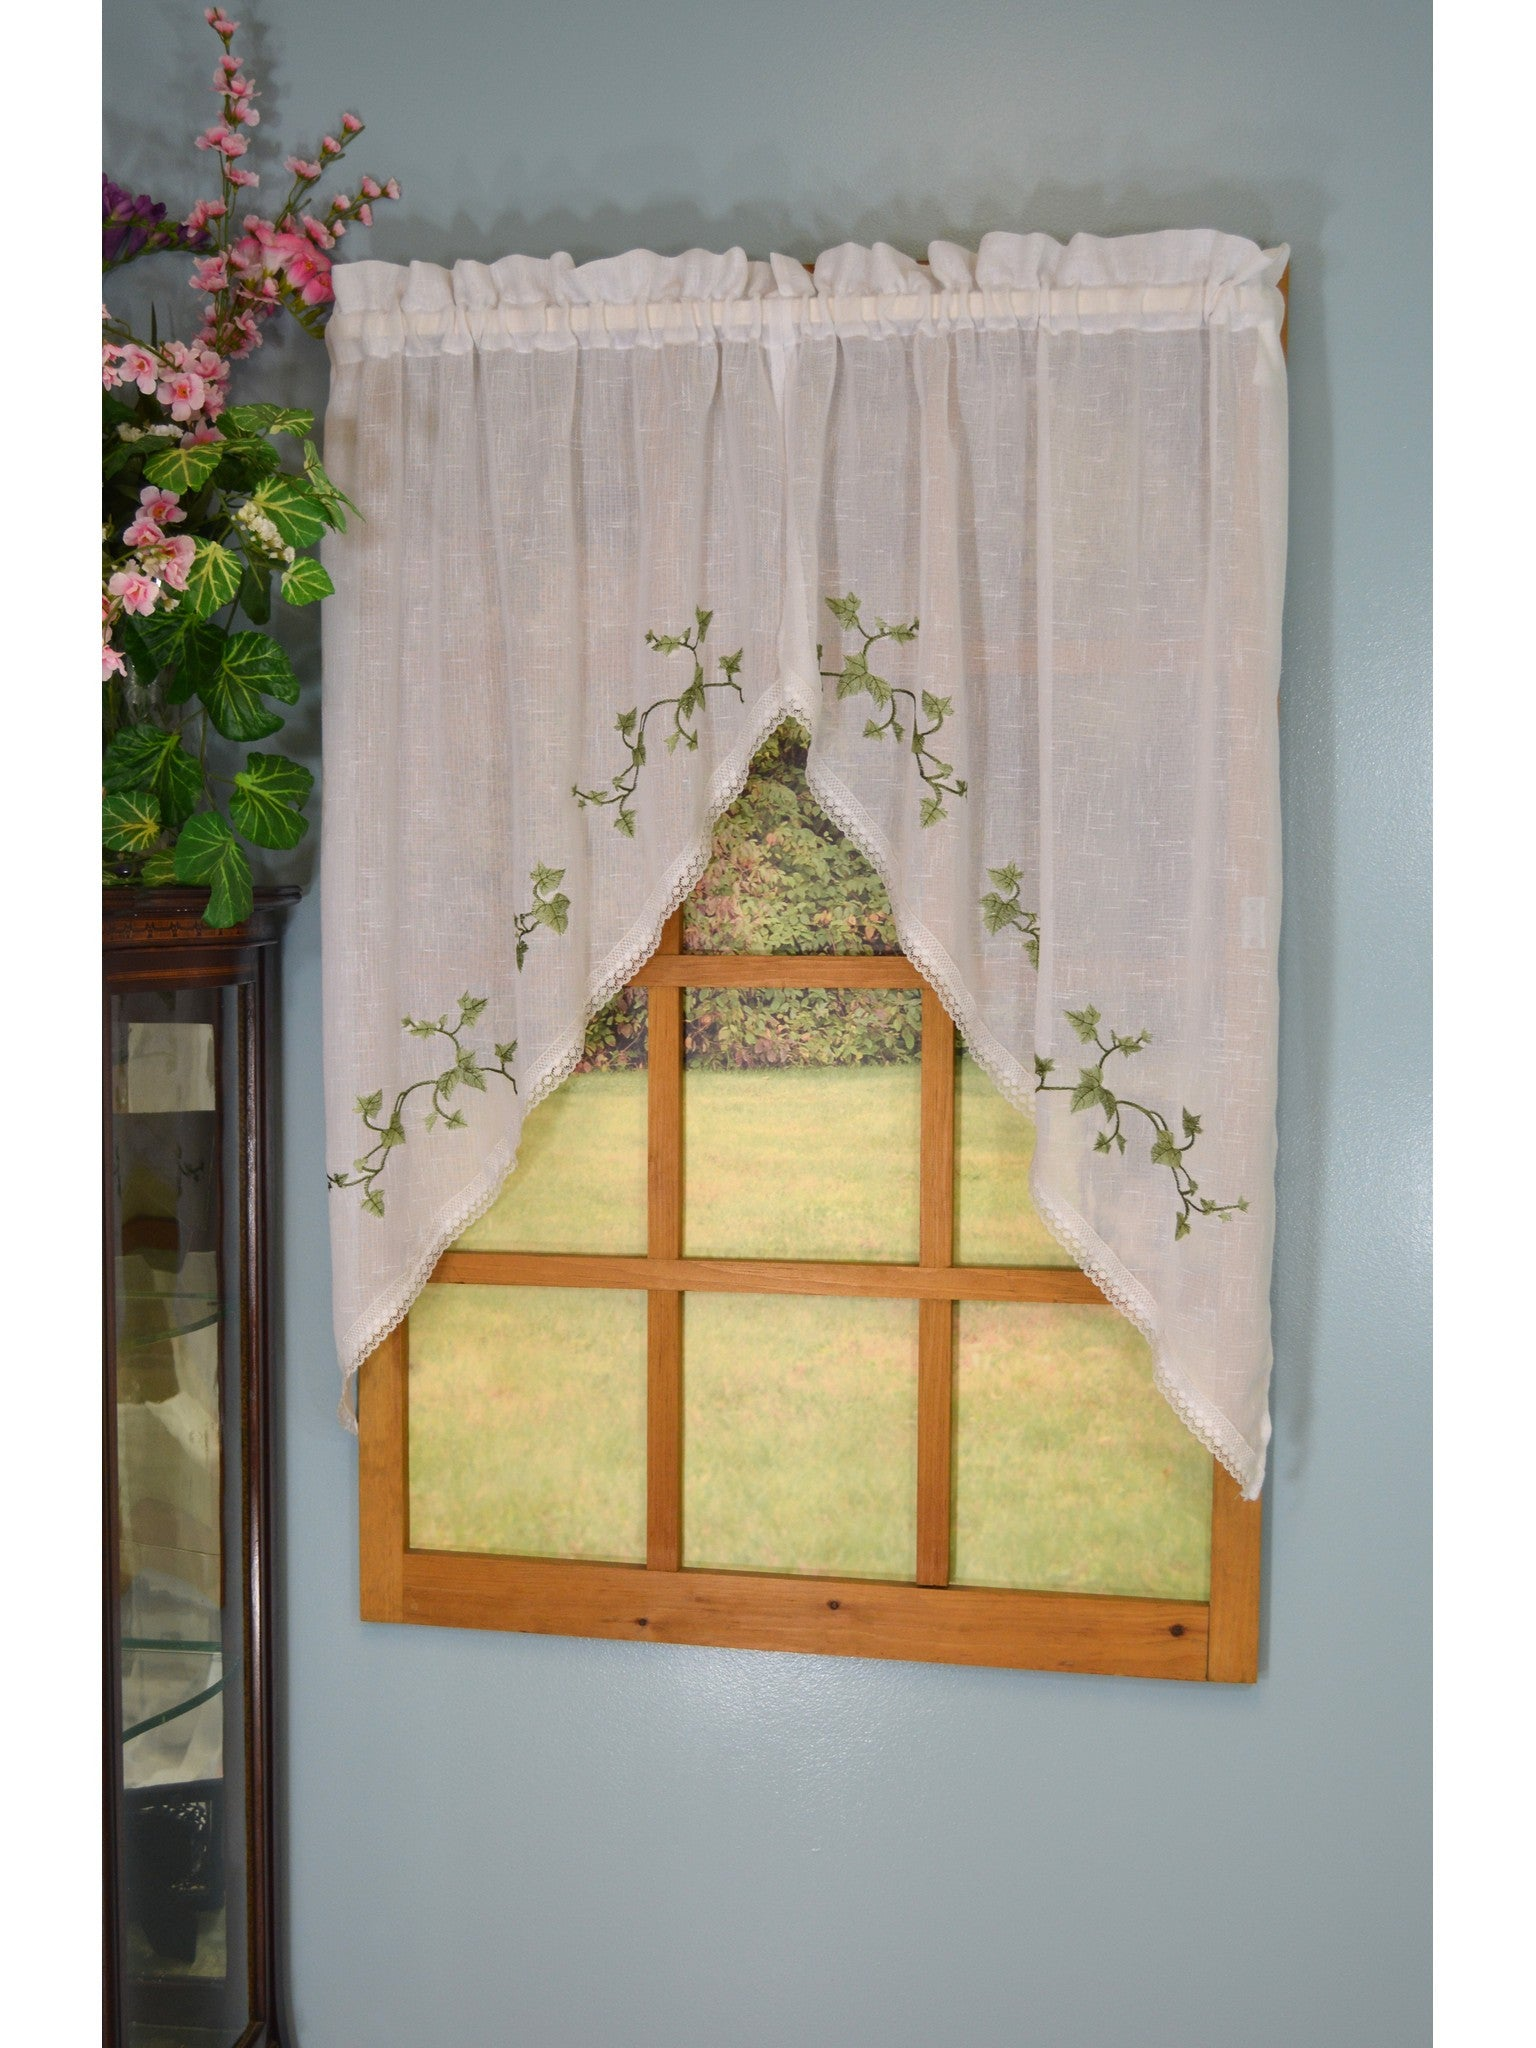 Garden Path Rod Pocket Tier/Valance/Swag - Swag 056x038 Ivy C22325- Marburn Curtains